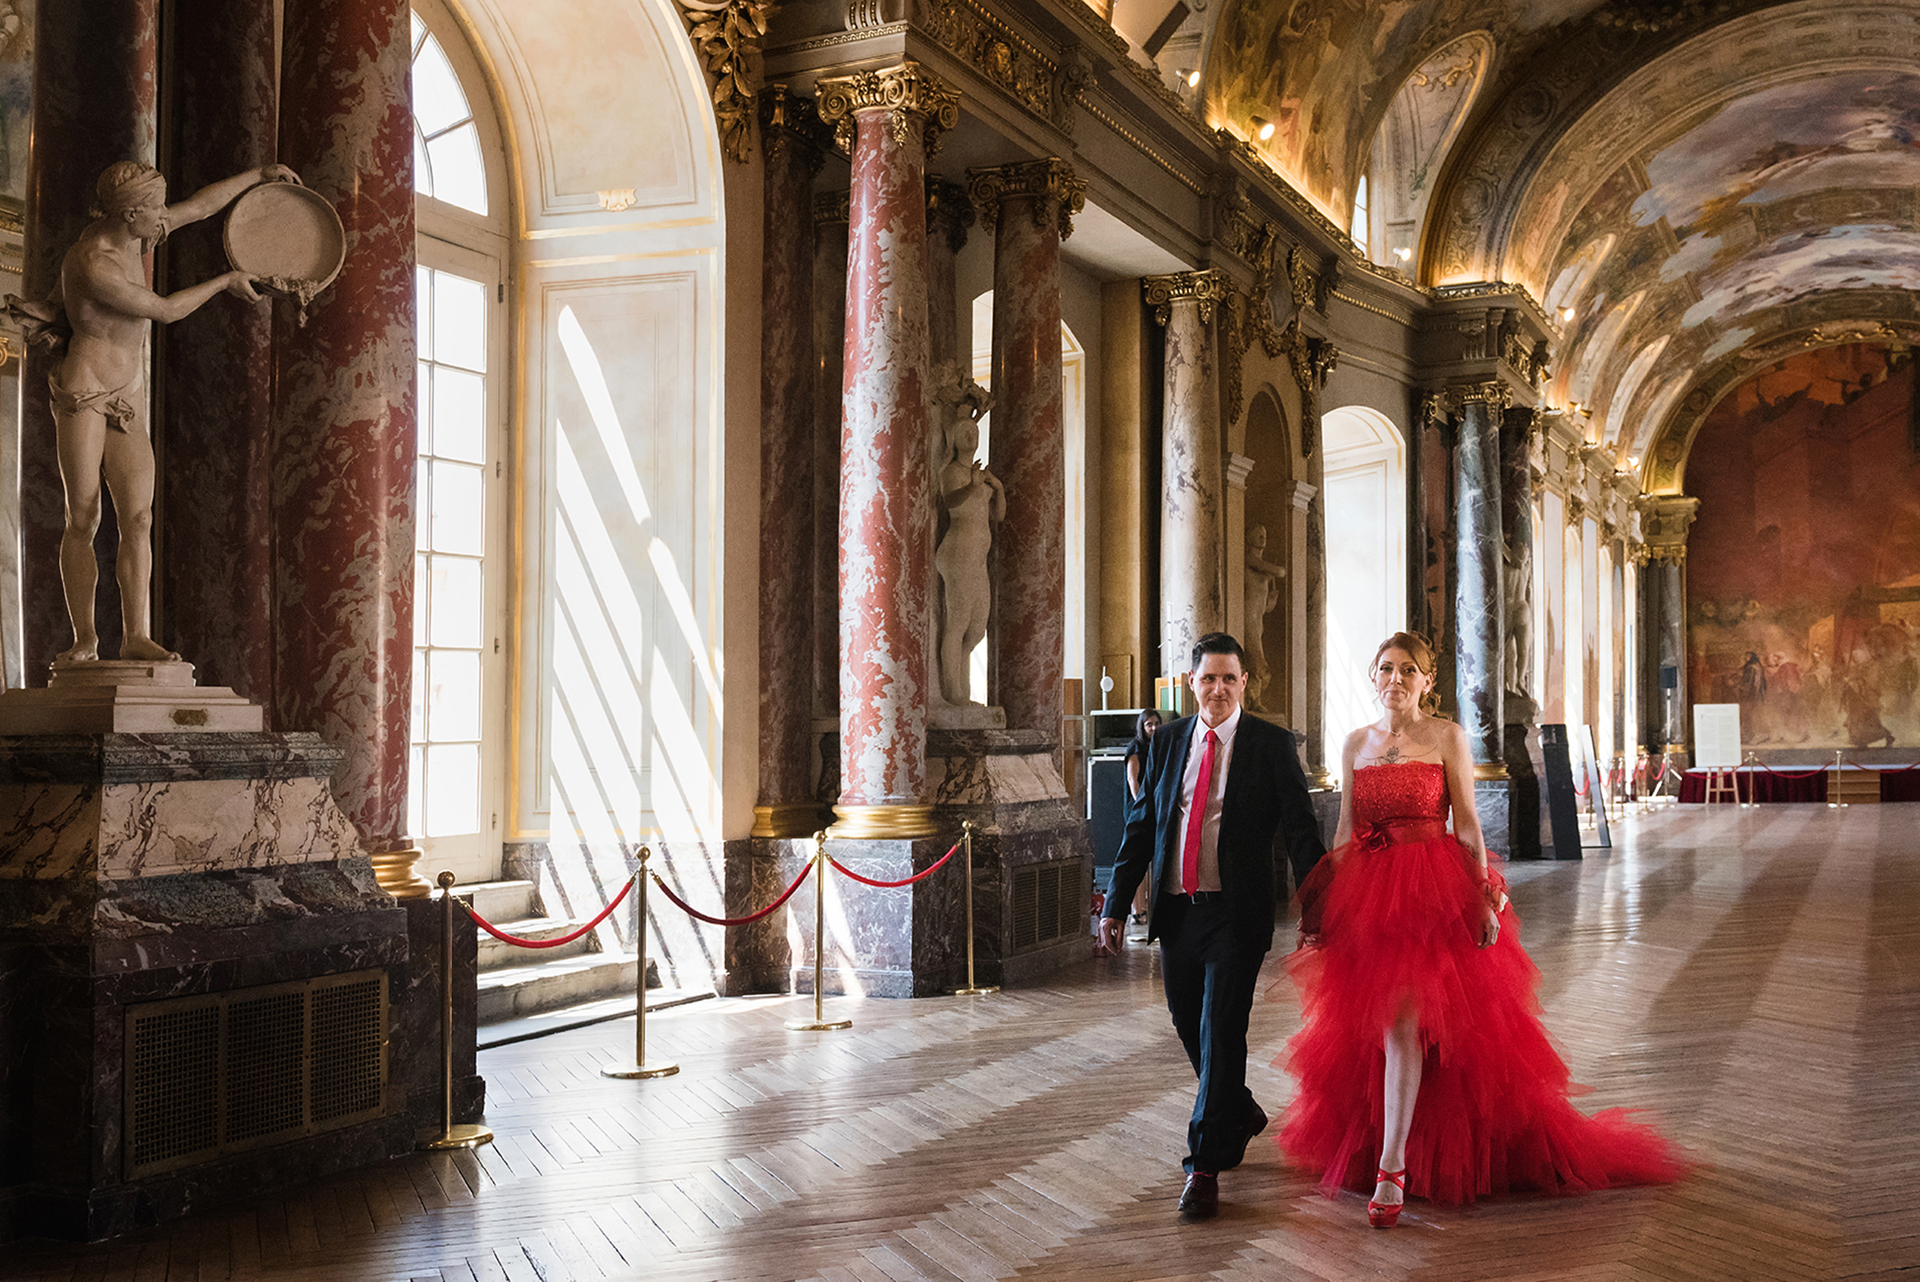 France Elopement Image from Toulouse City Hall | The bride and groom walk down a massive, ornate hallway with marble columns